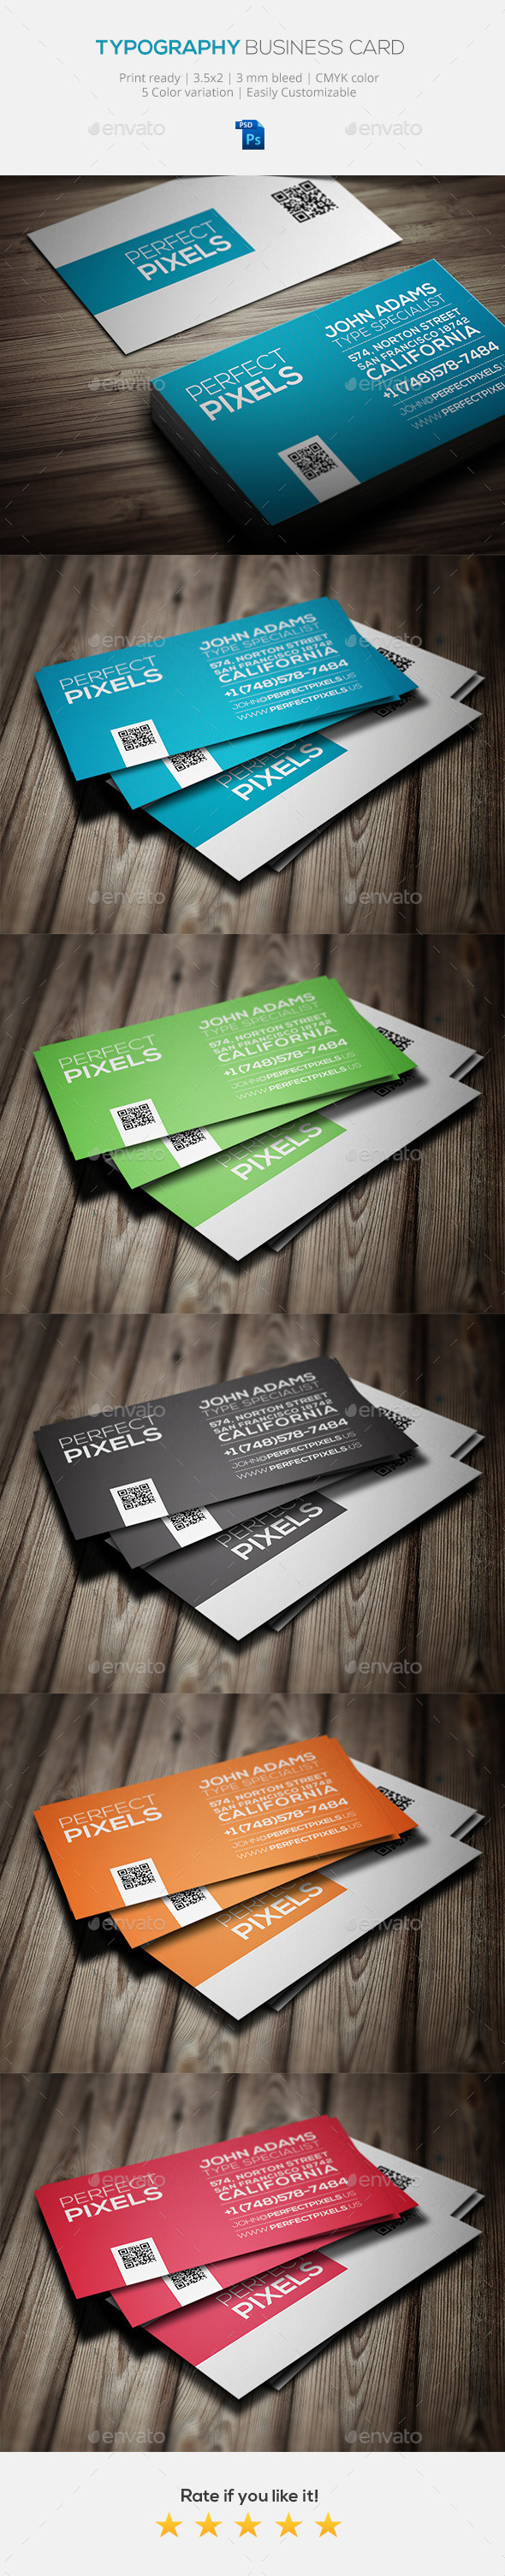 GraphicRiver Typography Business Card Template 10605610